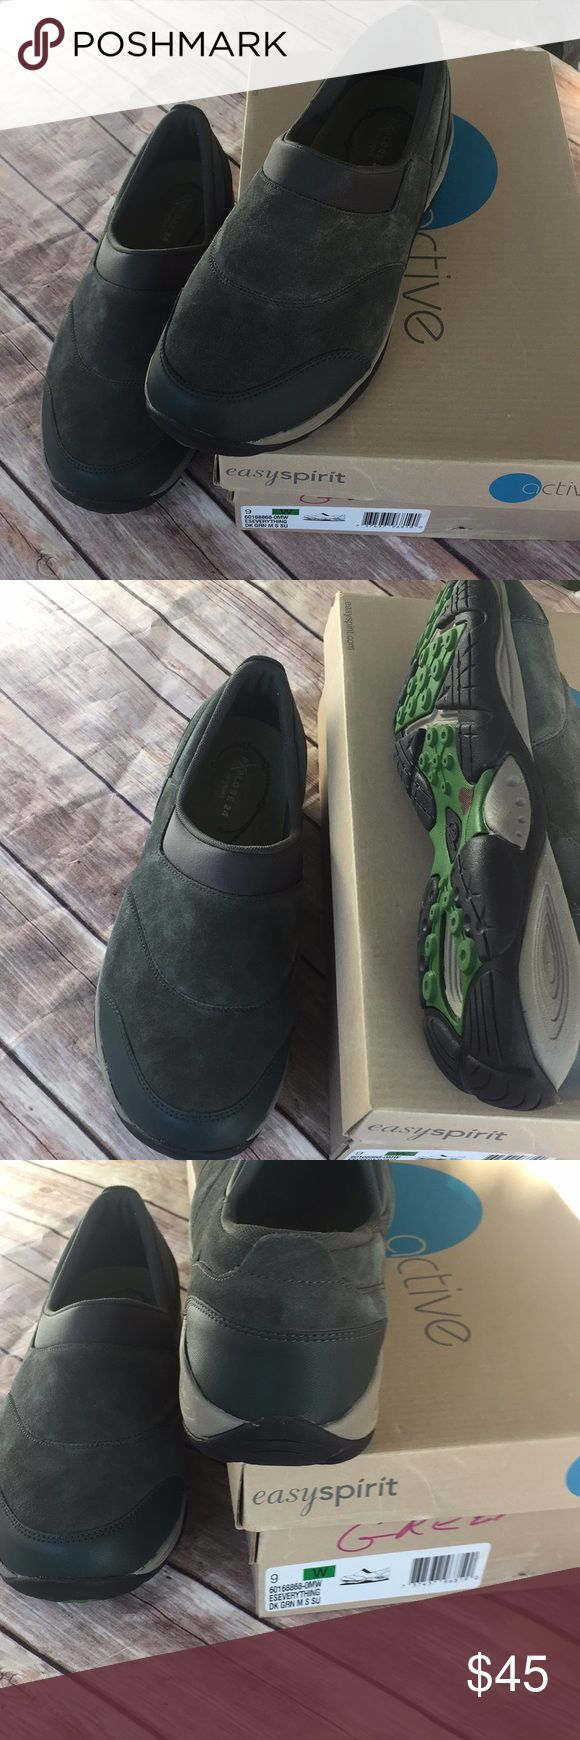 Easy Spirit dark olive green size 9 W New New with box size 9W Easy Spirit Shoes Flats & Loafers